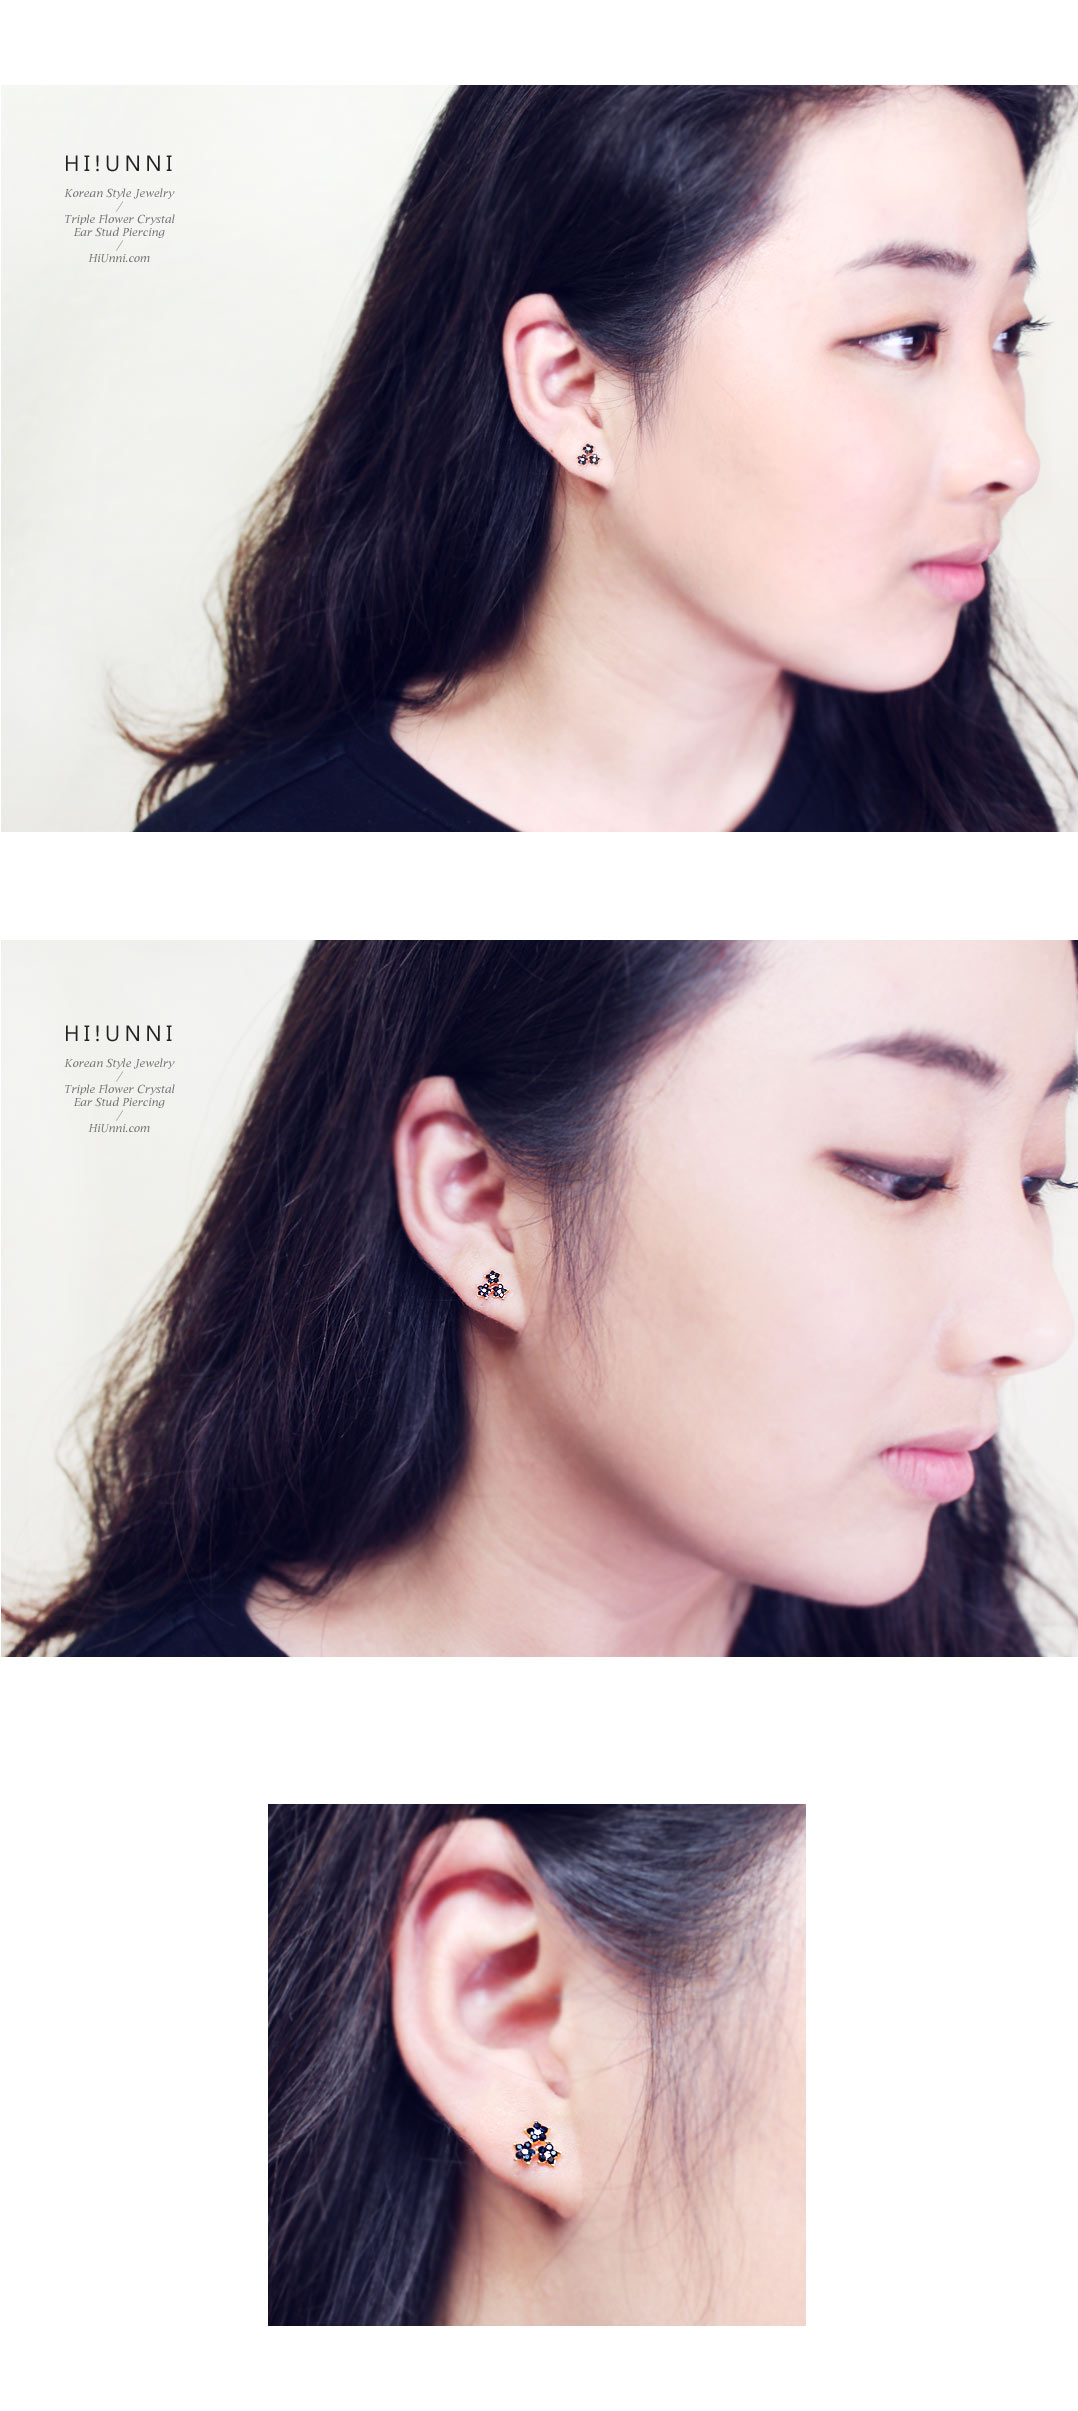 ear_studs_piercing_Cartilage_earrings_16g_316l_Surgical_Stainless_Steel_korean_asian_style_jewelry_barbell_AB_flower_crystal_5